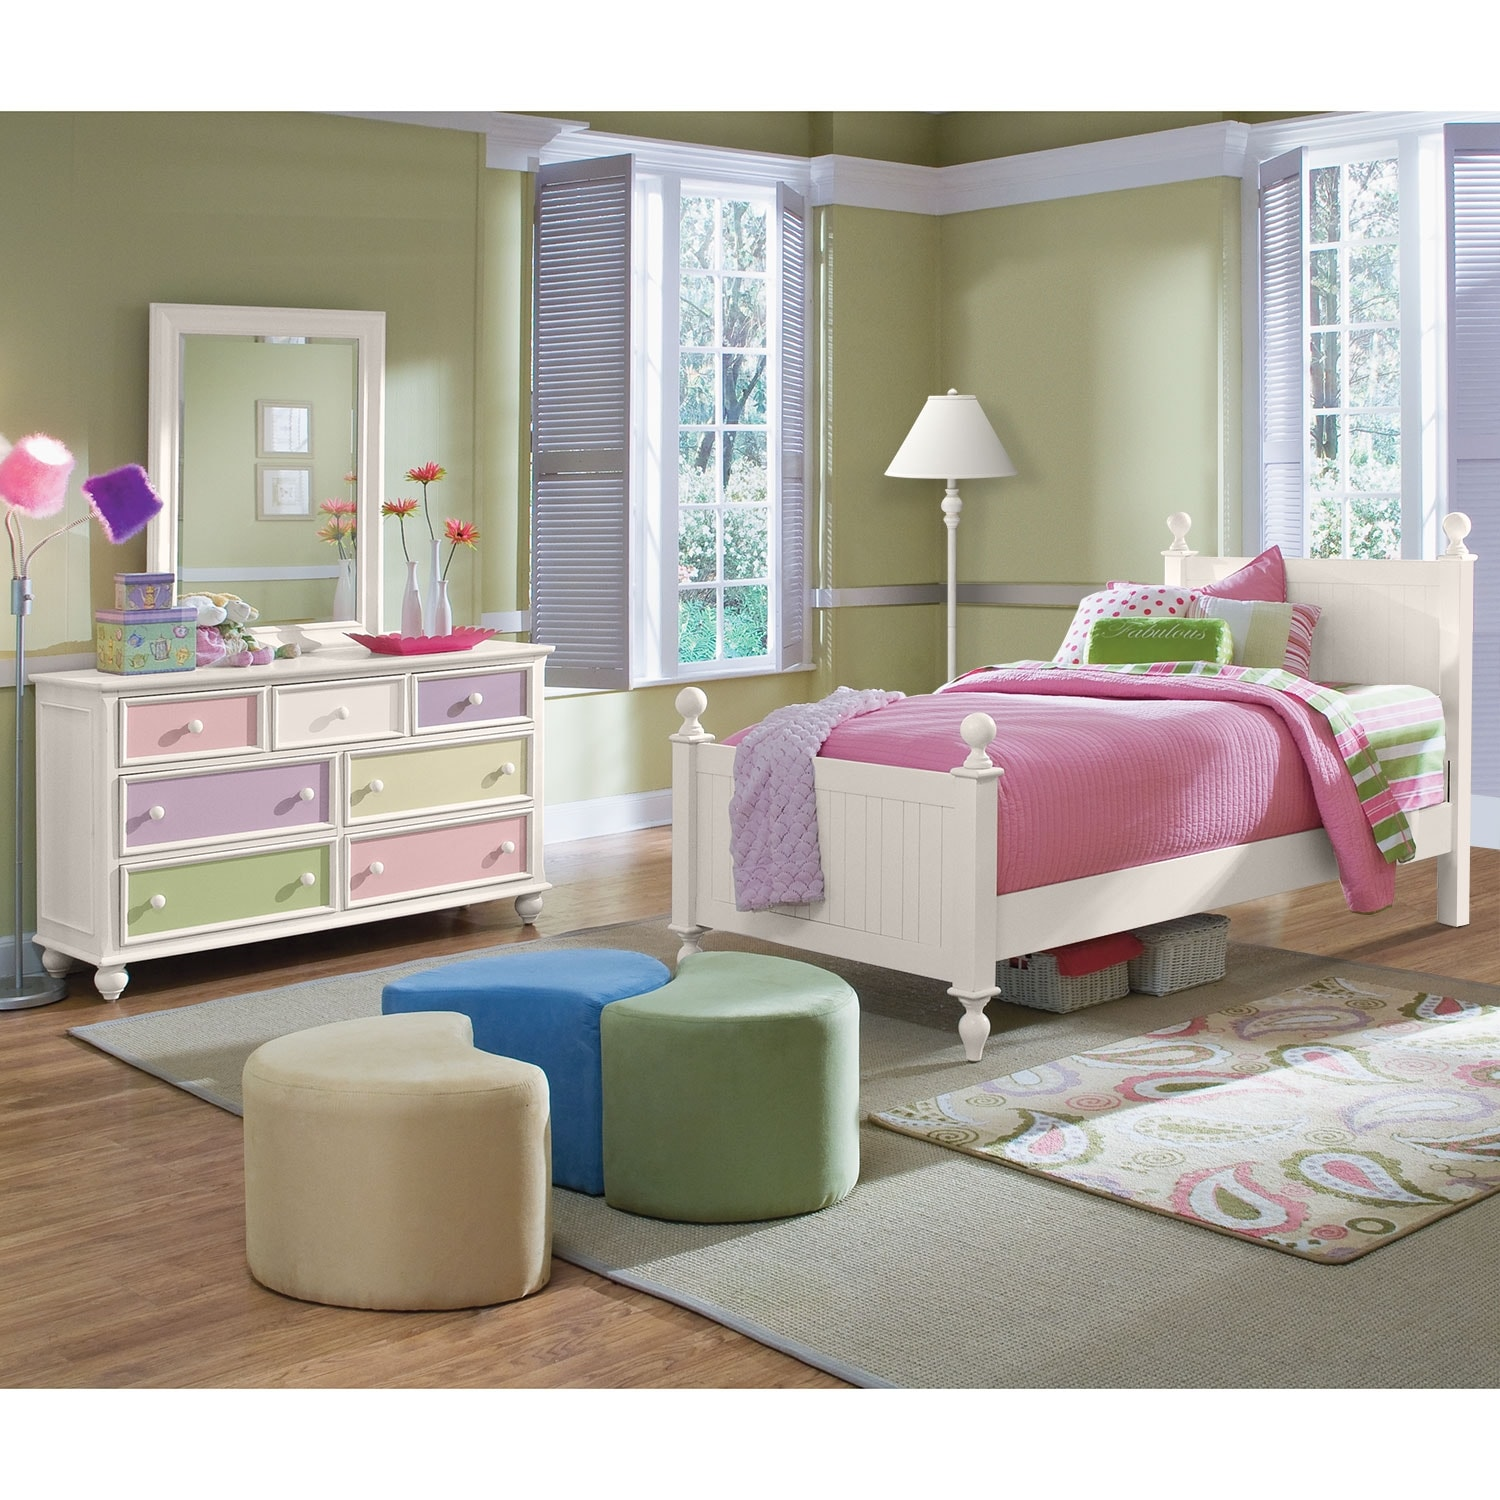 Kids Furniture - Colorworks 5-Piece Full Bedroom Set - White